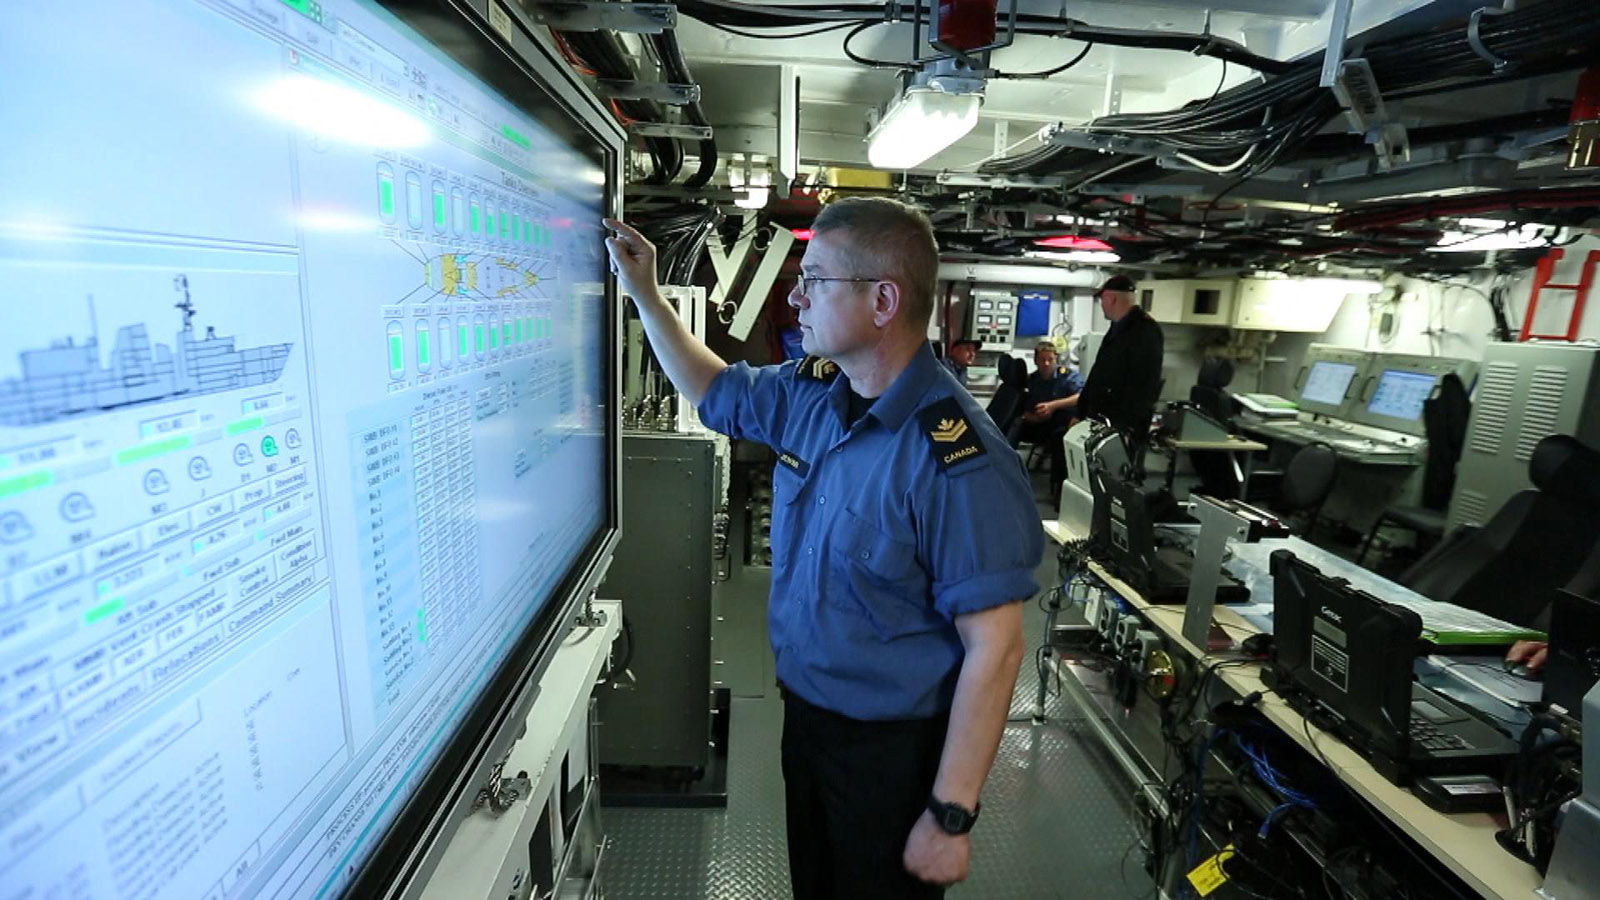 Sailor monitors ship's systems